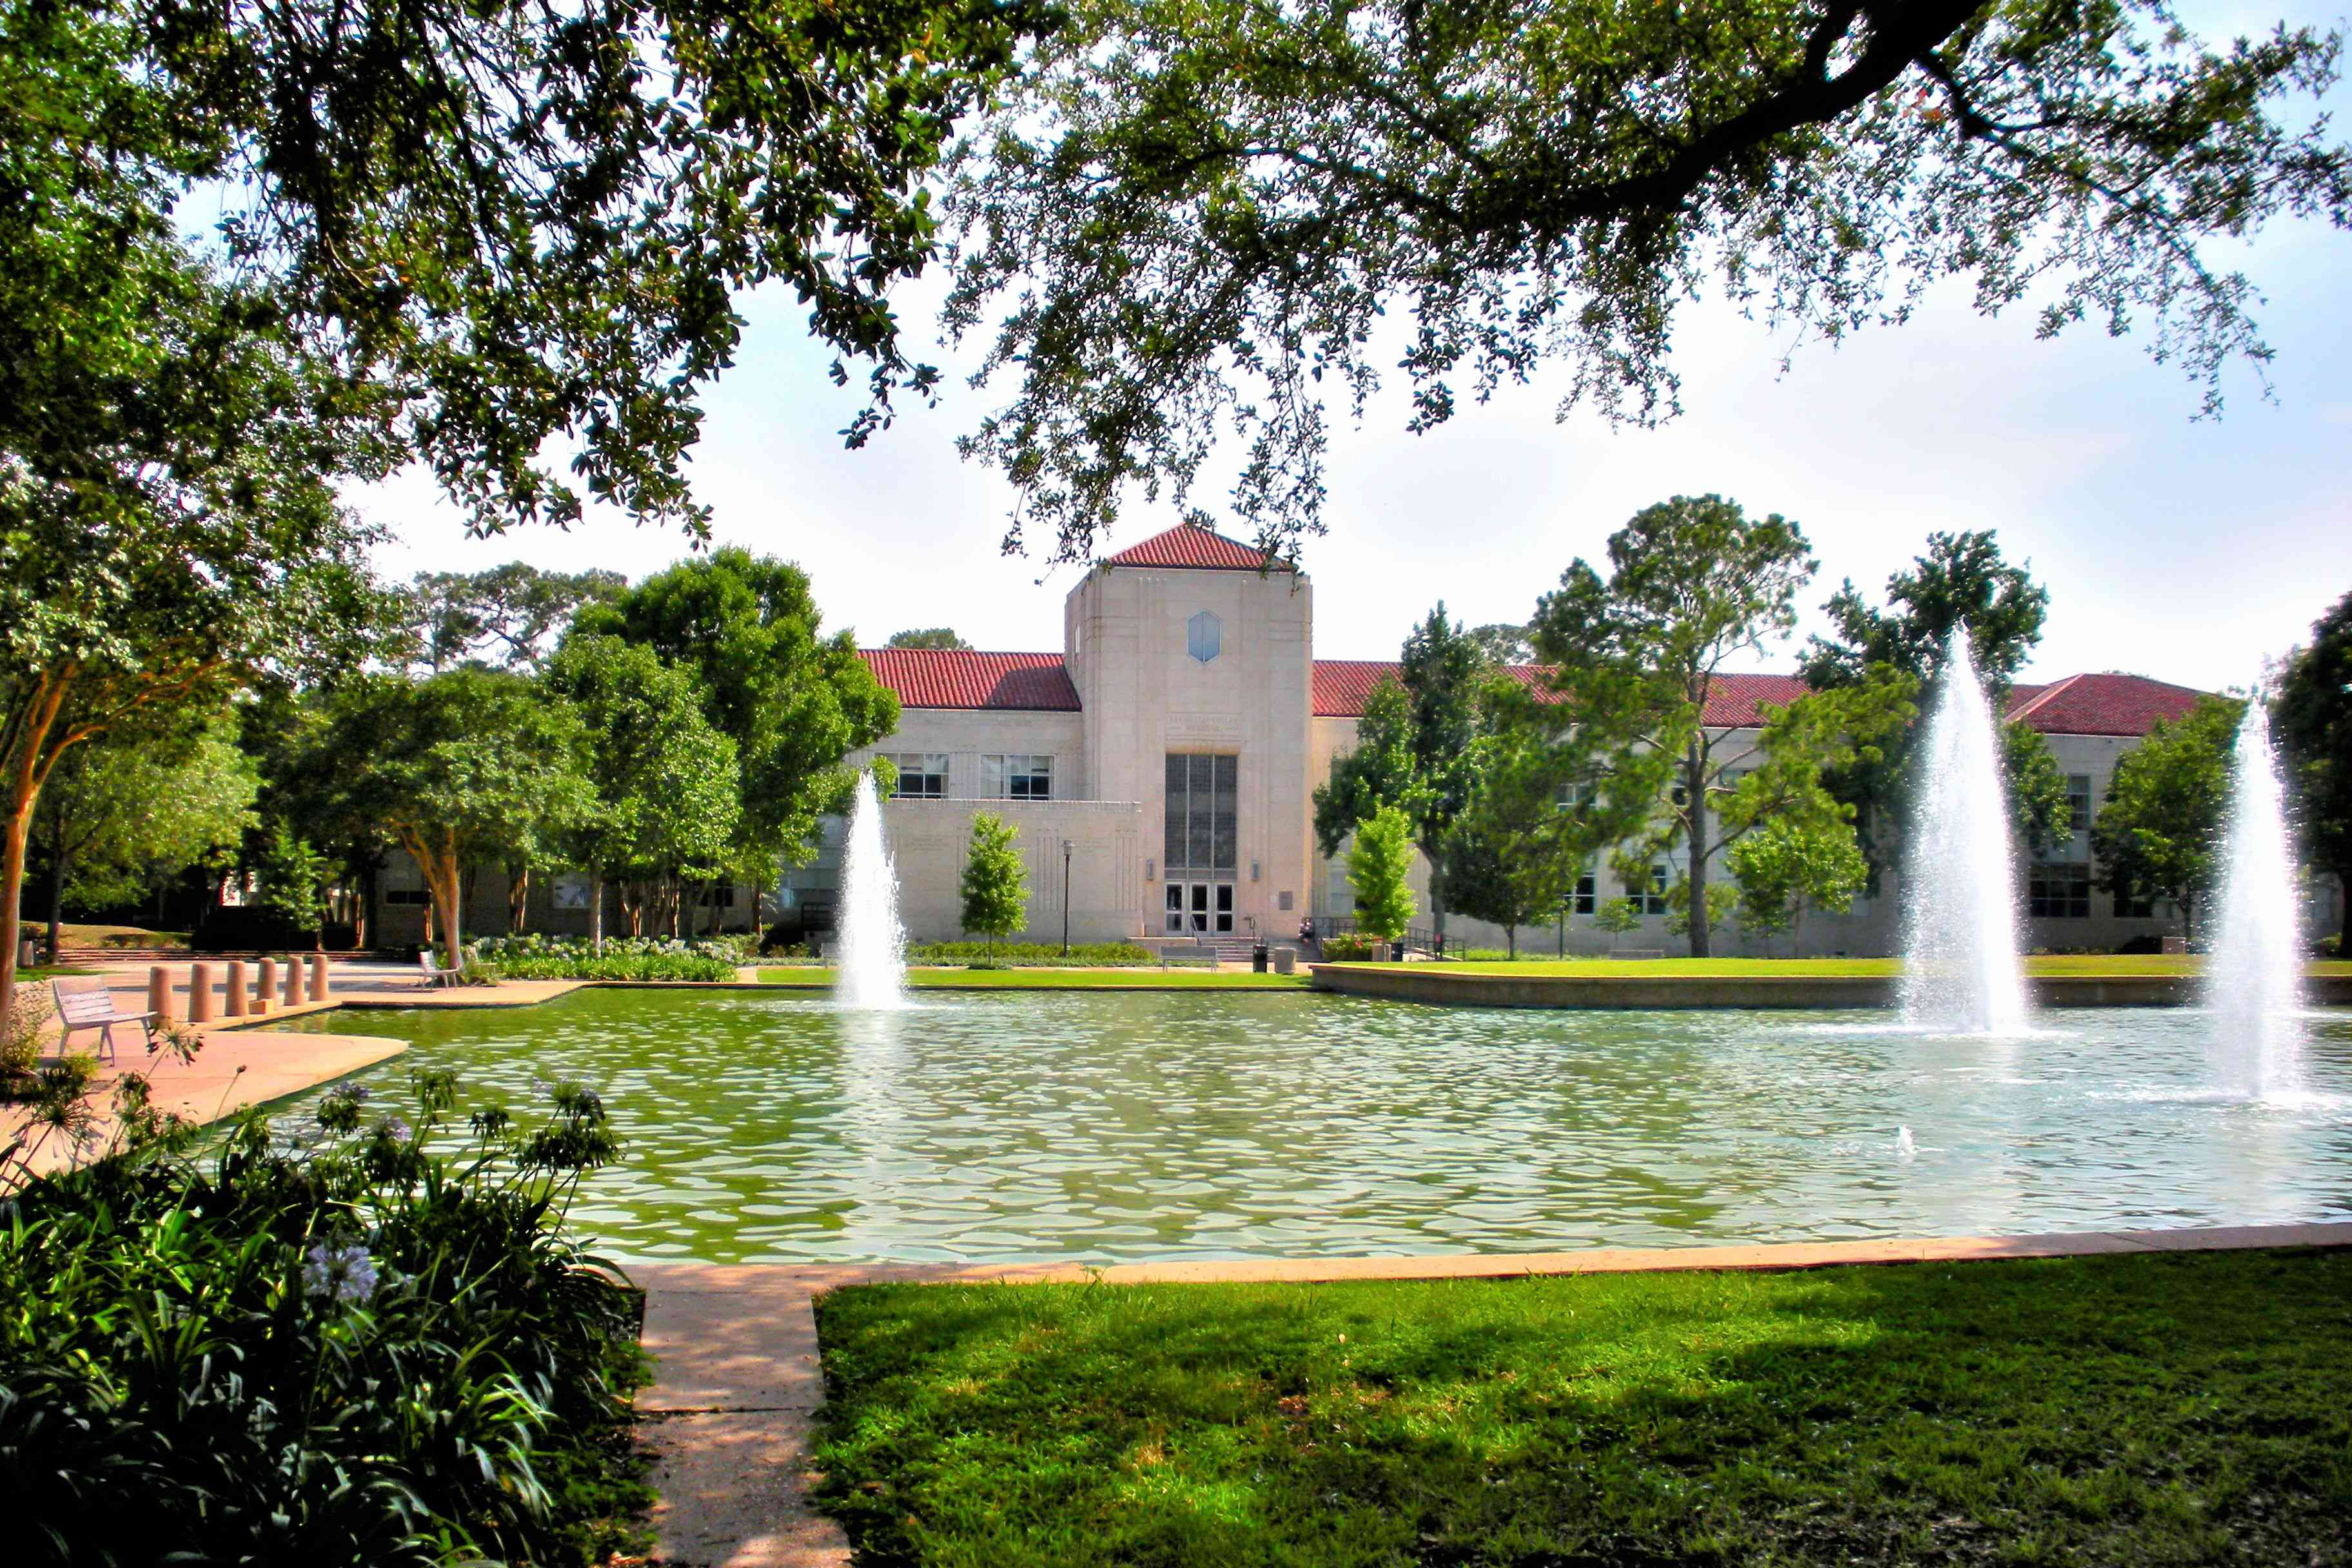 Fountains and campus in front of the Roy G. Cullen Building, University of Houston